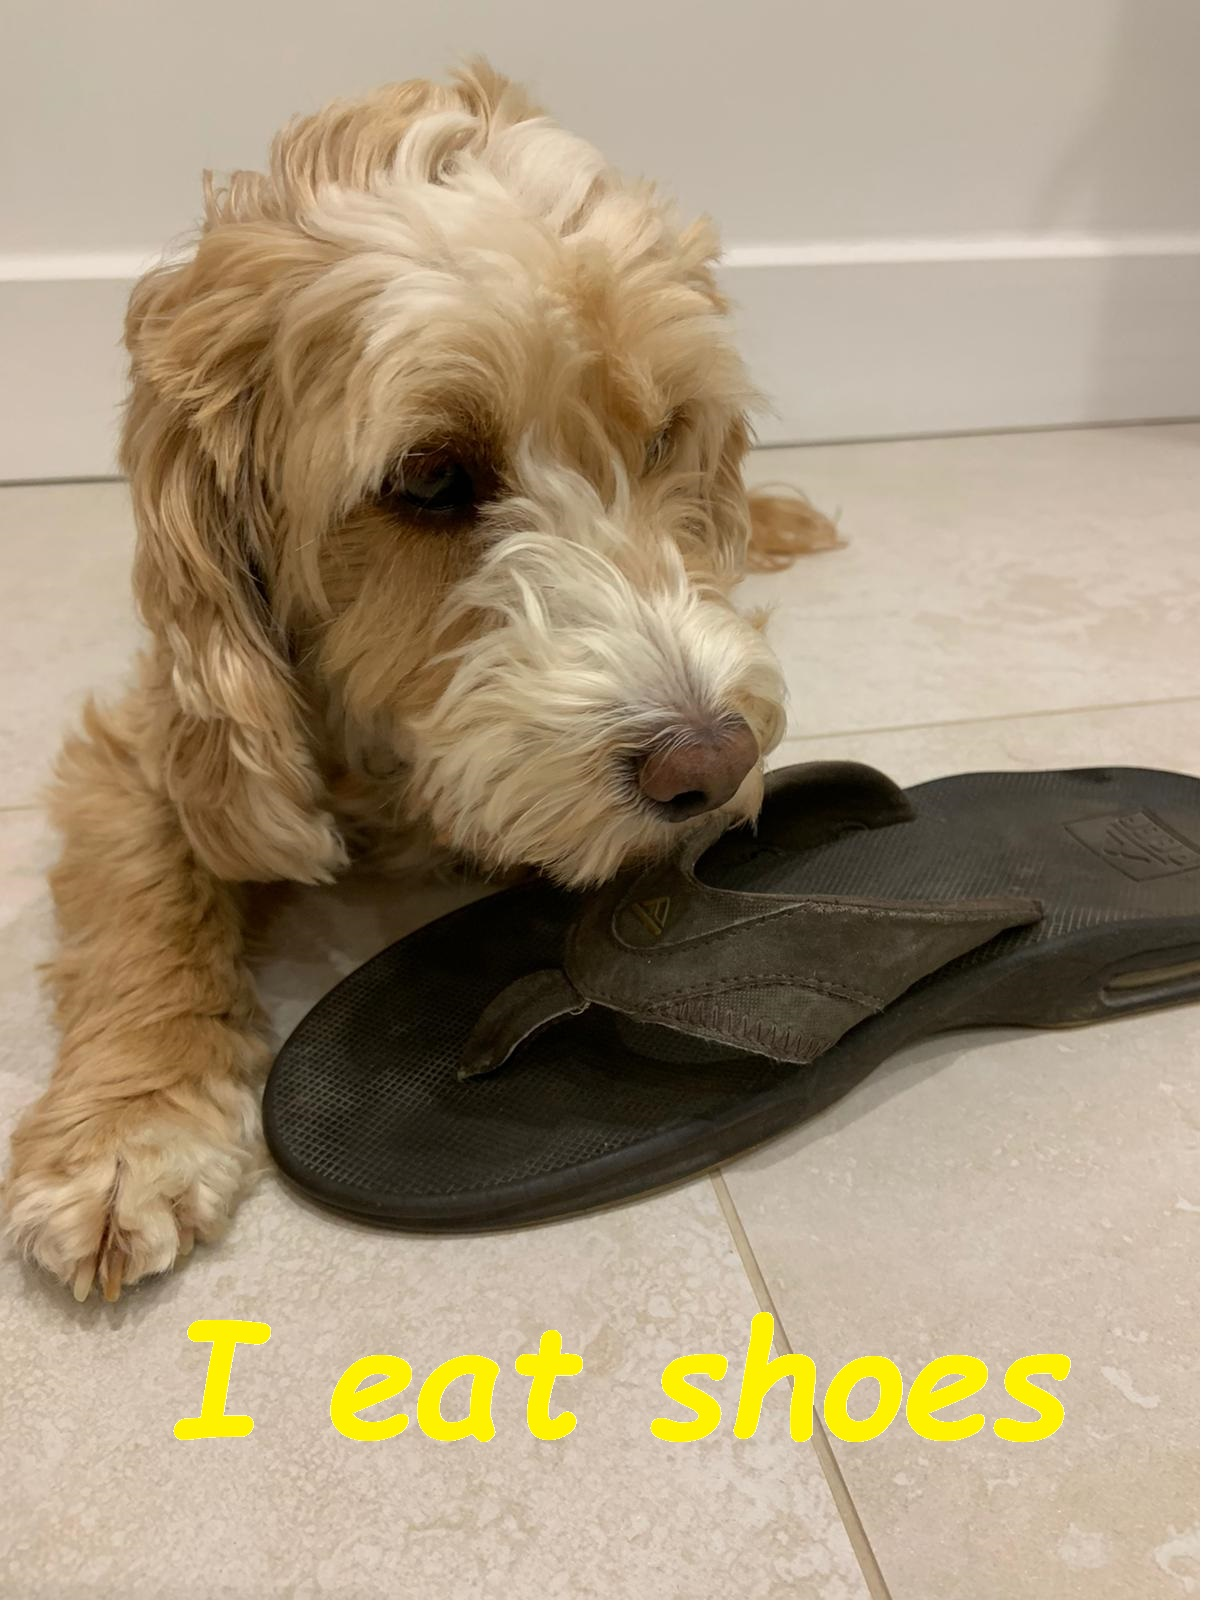 Dog 3. I eat shoes.